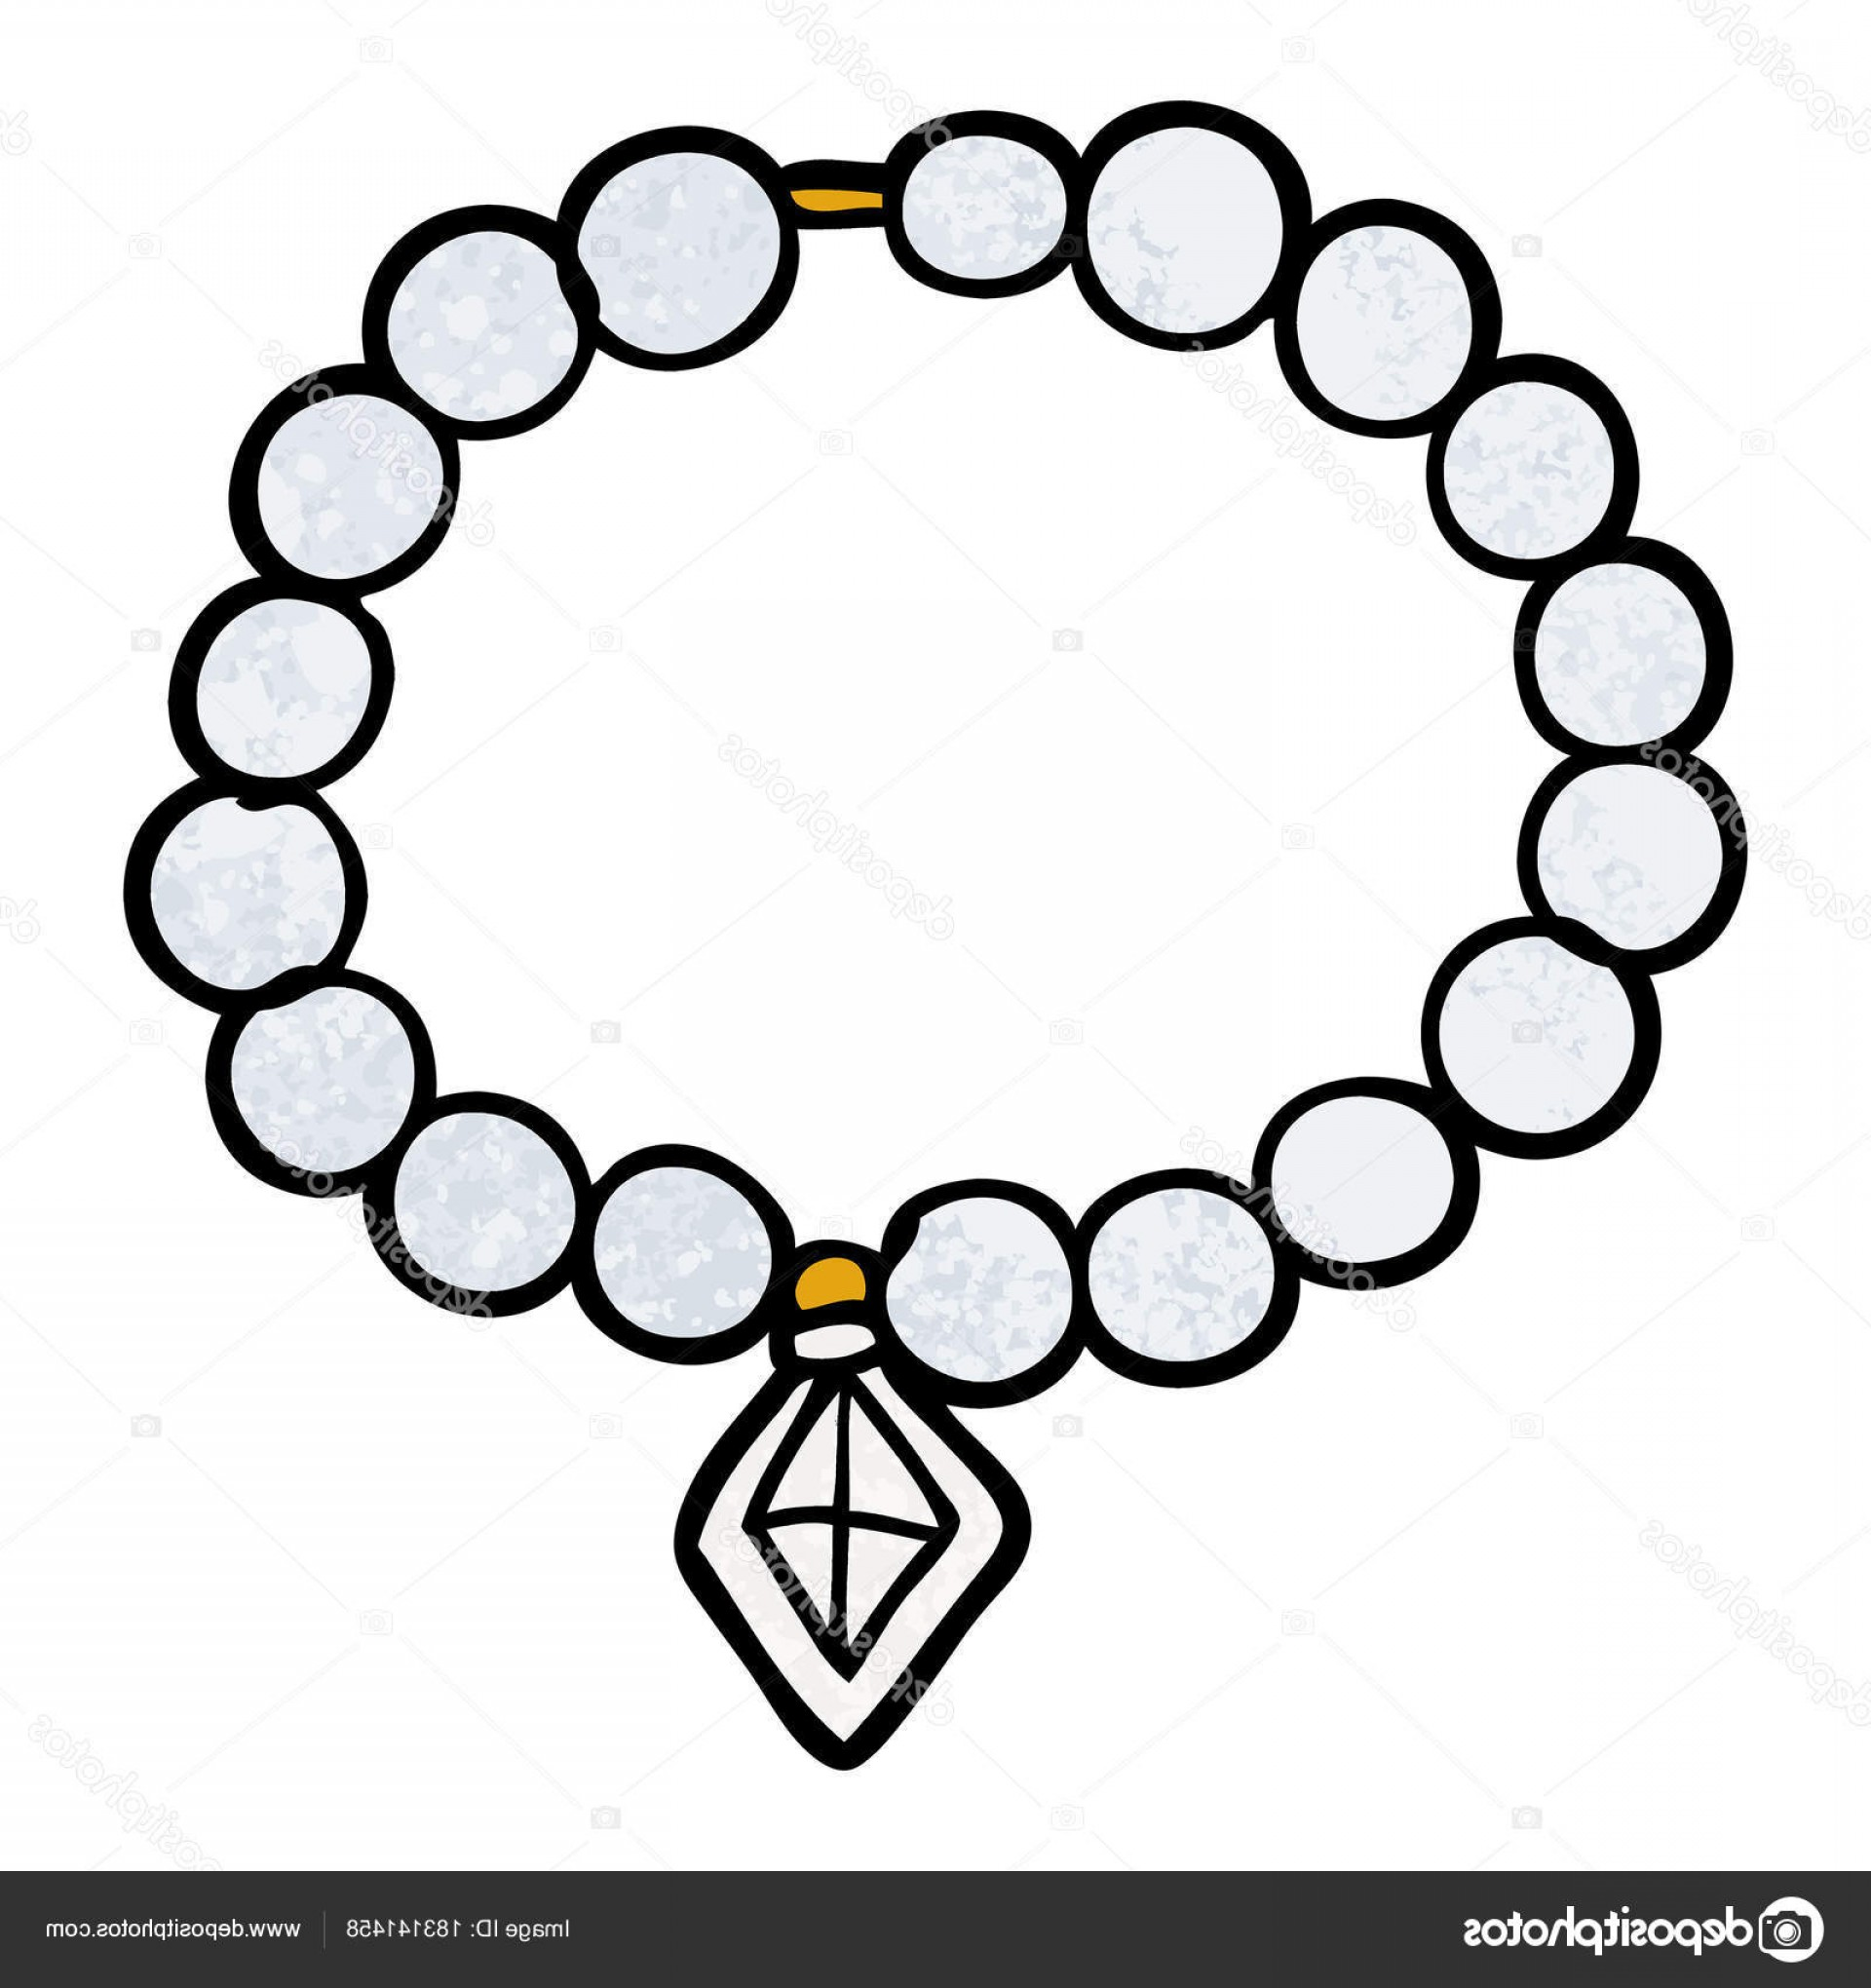 Pearl Necklace Vector Clip Art: Stock Illustration Vector Illustration Cartoon Pearl Necklace